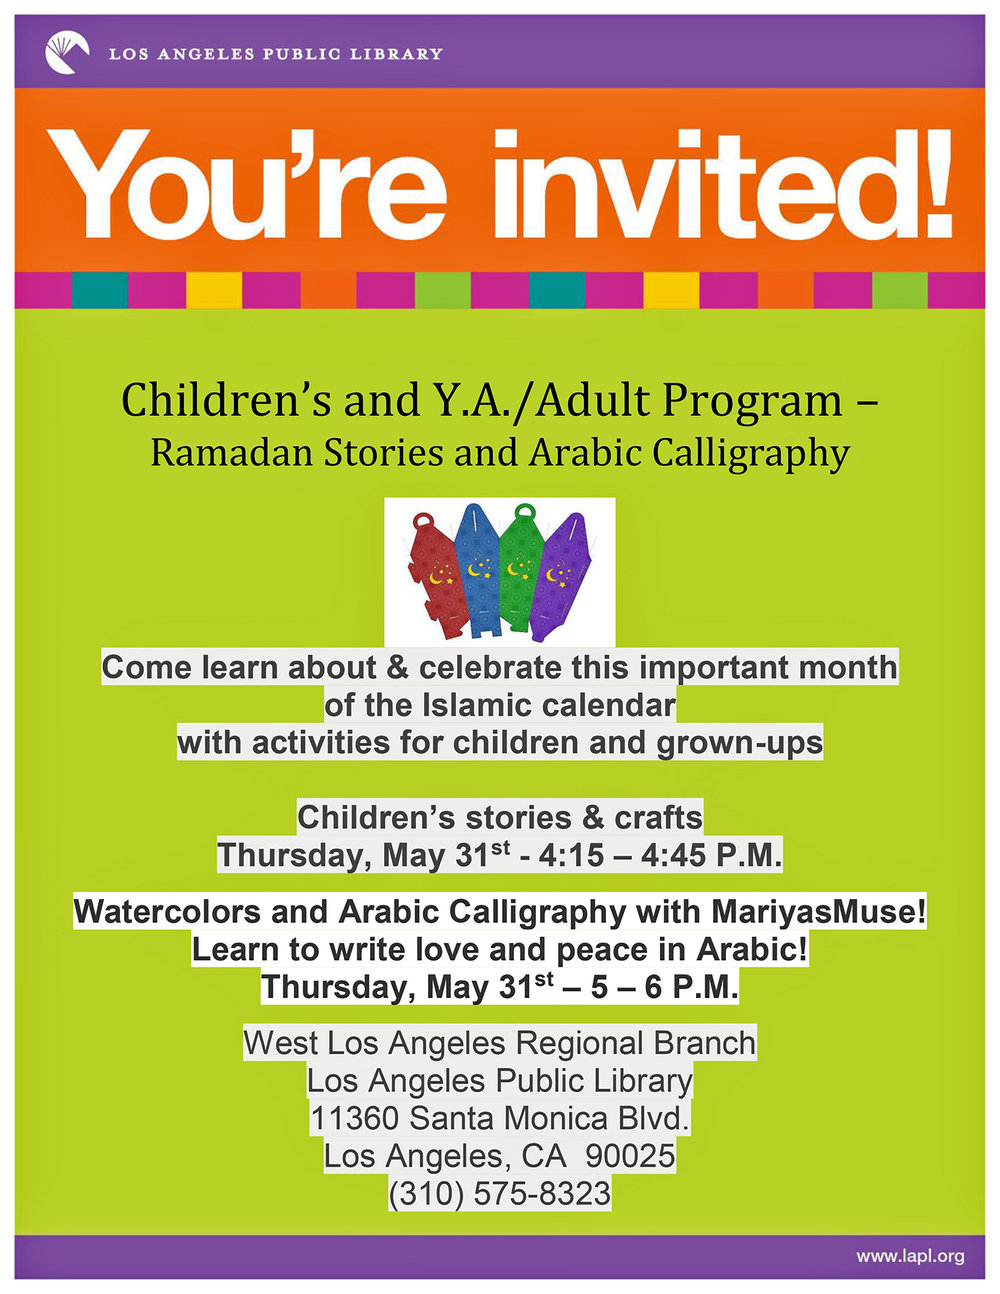 West LA Regional Library (11360 SaMo Blvd, 90025).  Thursday, May 31st from 4-6 PM, West LA is hosting an afternoon of Ramadan-related programs that celebrate and expand our understanding of the ninth month of the Islamic calendar.  Please join the WLA Library for children's stories and crafts from 4:15-4:45, and stay with us for Arabic Calligraphy with MariyasMuse! from 5-6 PM. More importantly, come and meet your neighbors and learn about Arabic calligraphy.